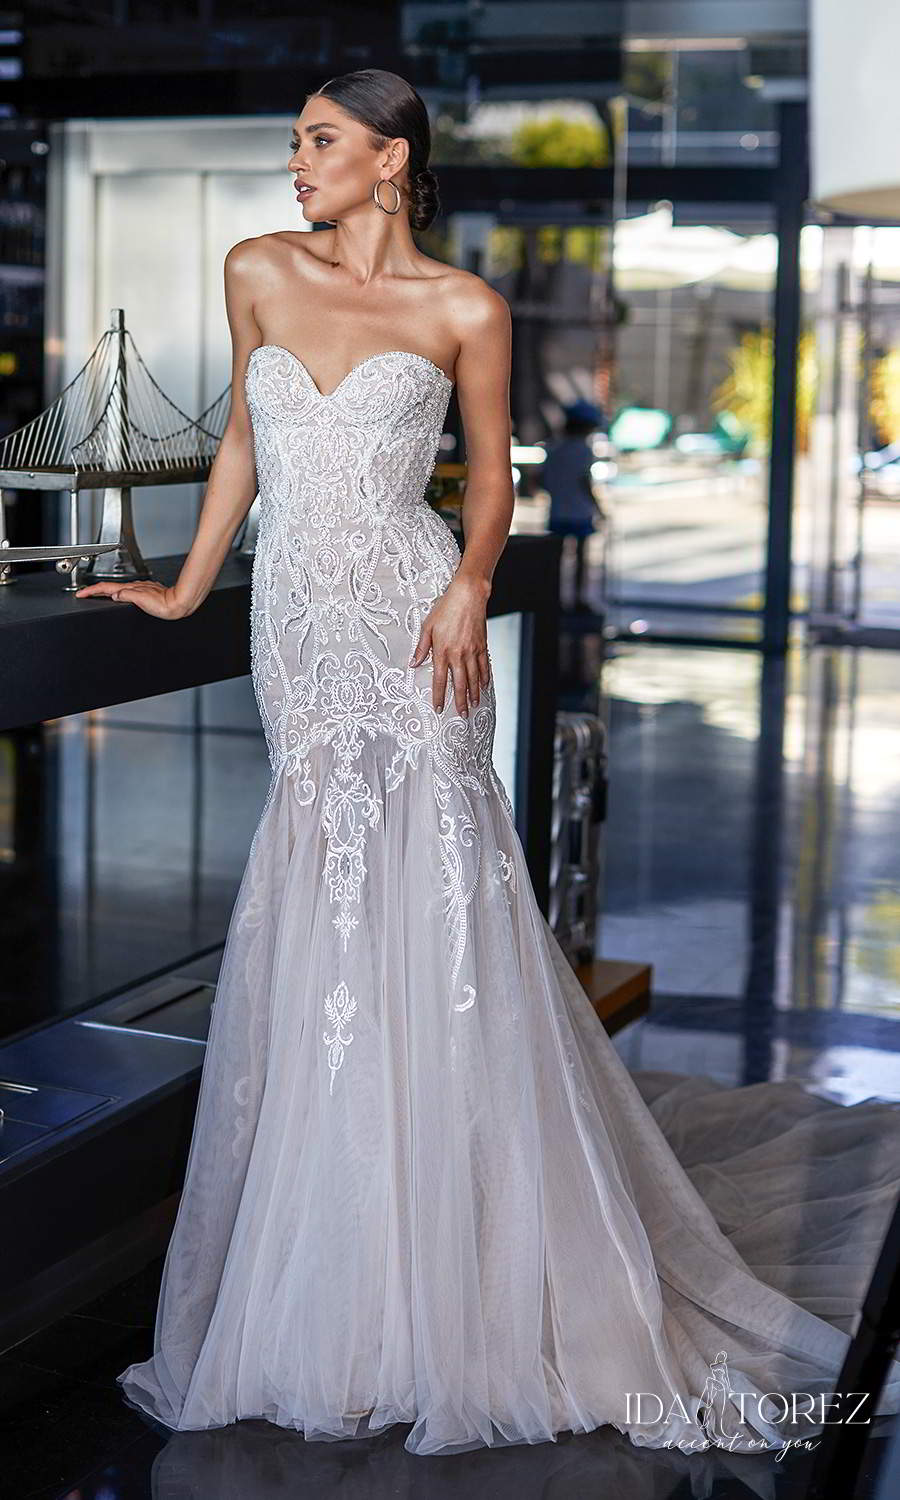 ida torez 2021 bridal strapless sweetheart neckline heavily embellished bodice fit flare mermaid wedding dress chapel train (piercing gaze) mv